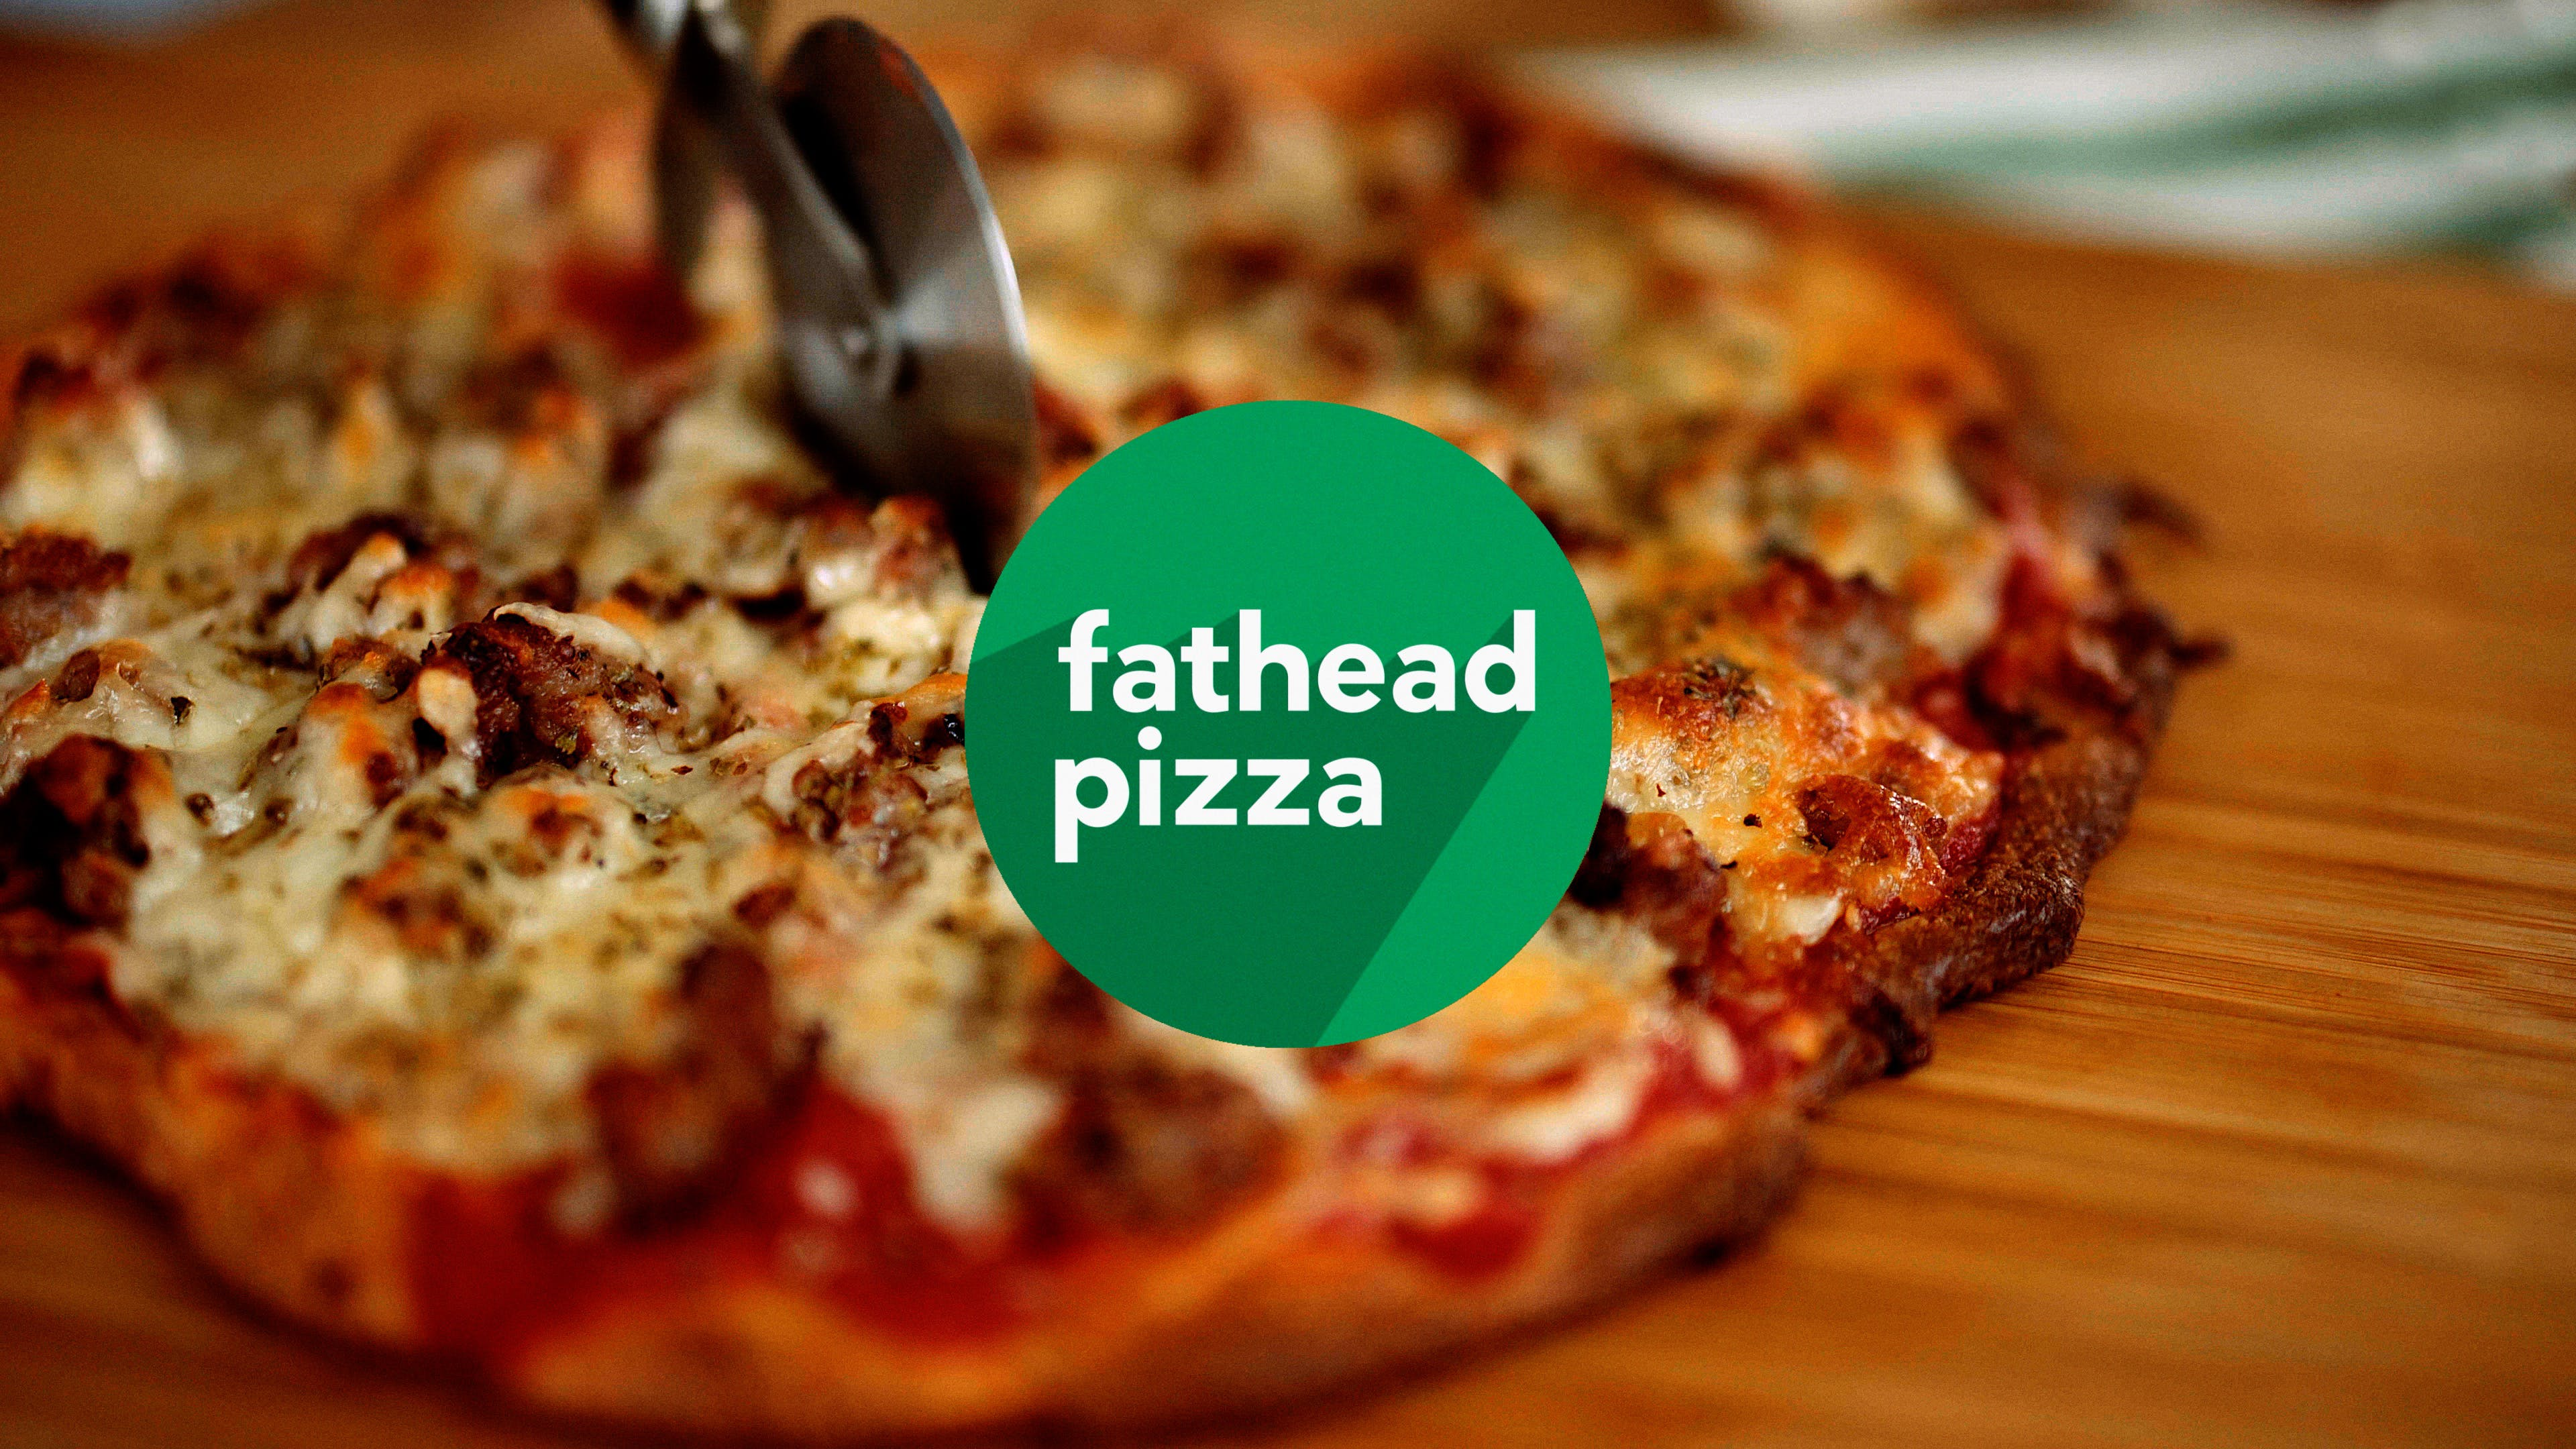 Our #6 most popular video of 2018: Fathead pizza